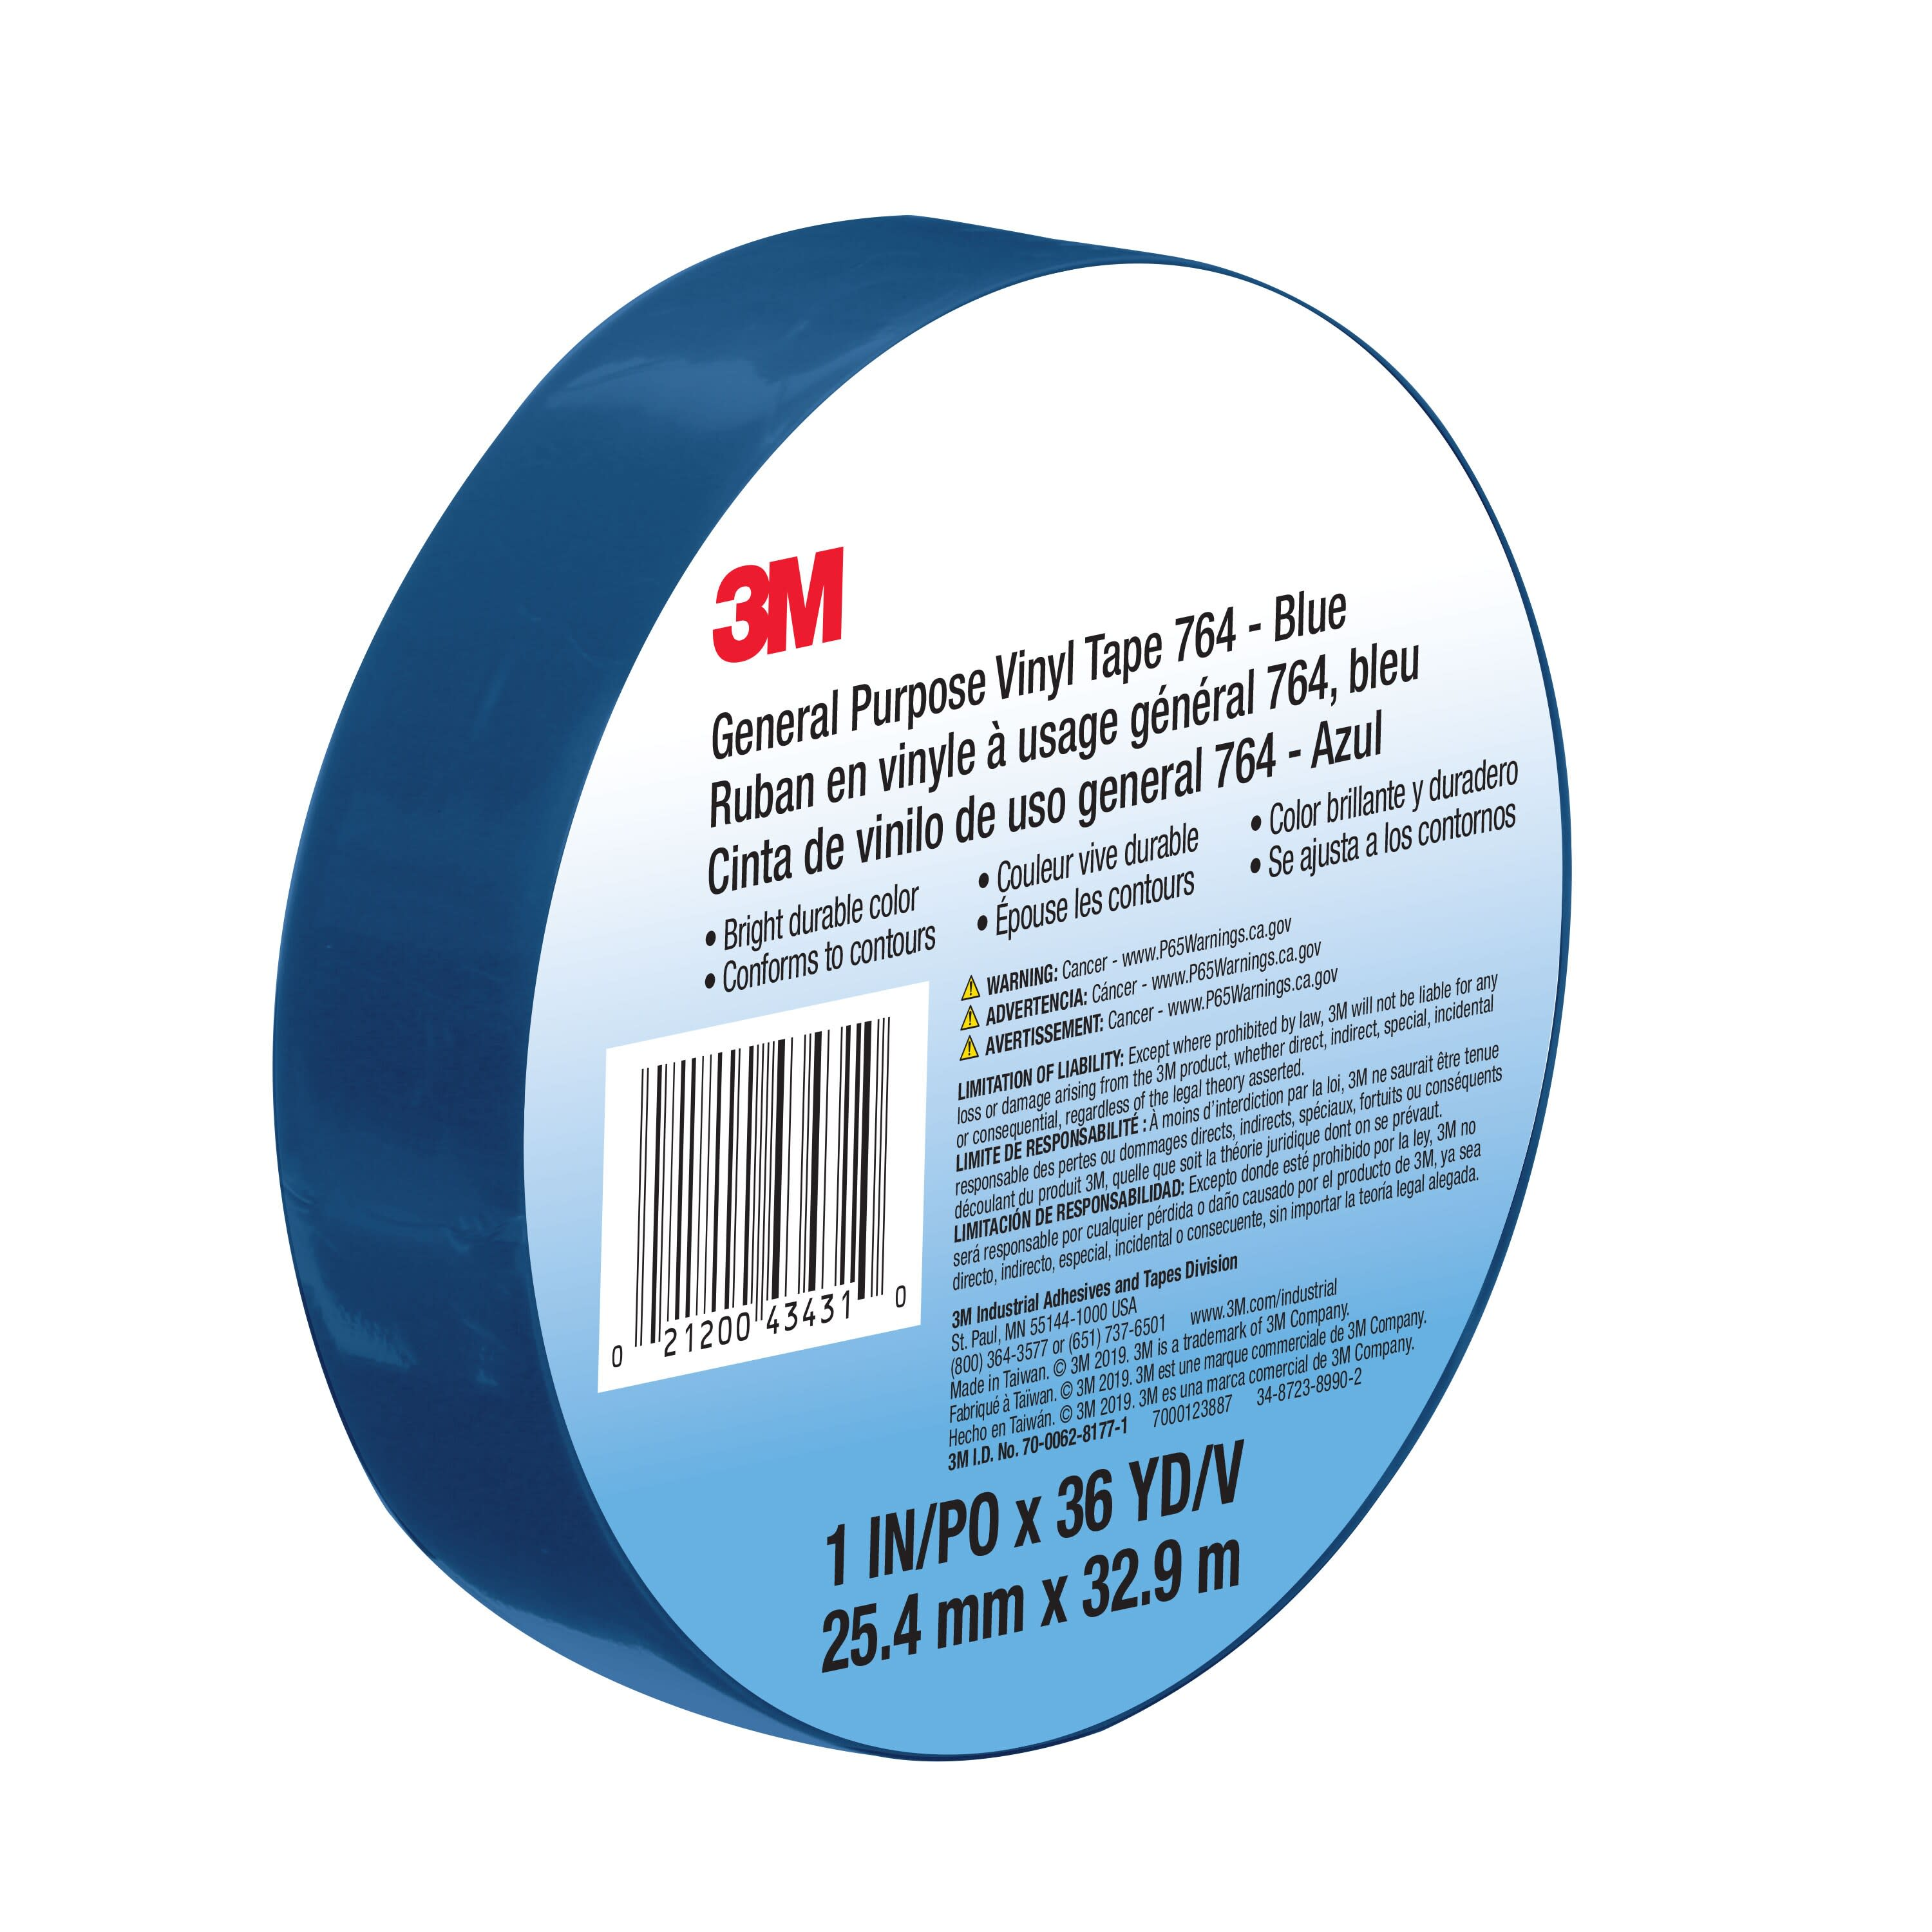 3M™ General Purpose Vinyl Tape 764, Blue, 1 in x 36 yd, 5 mil, 36 Roll/Case, Individually Wrapped Conveniently Packaged